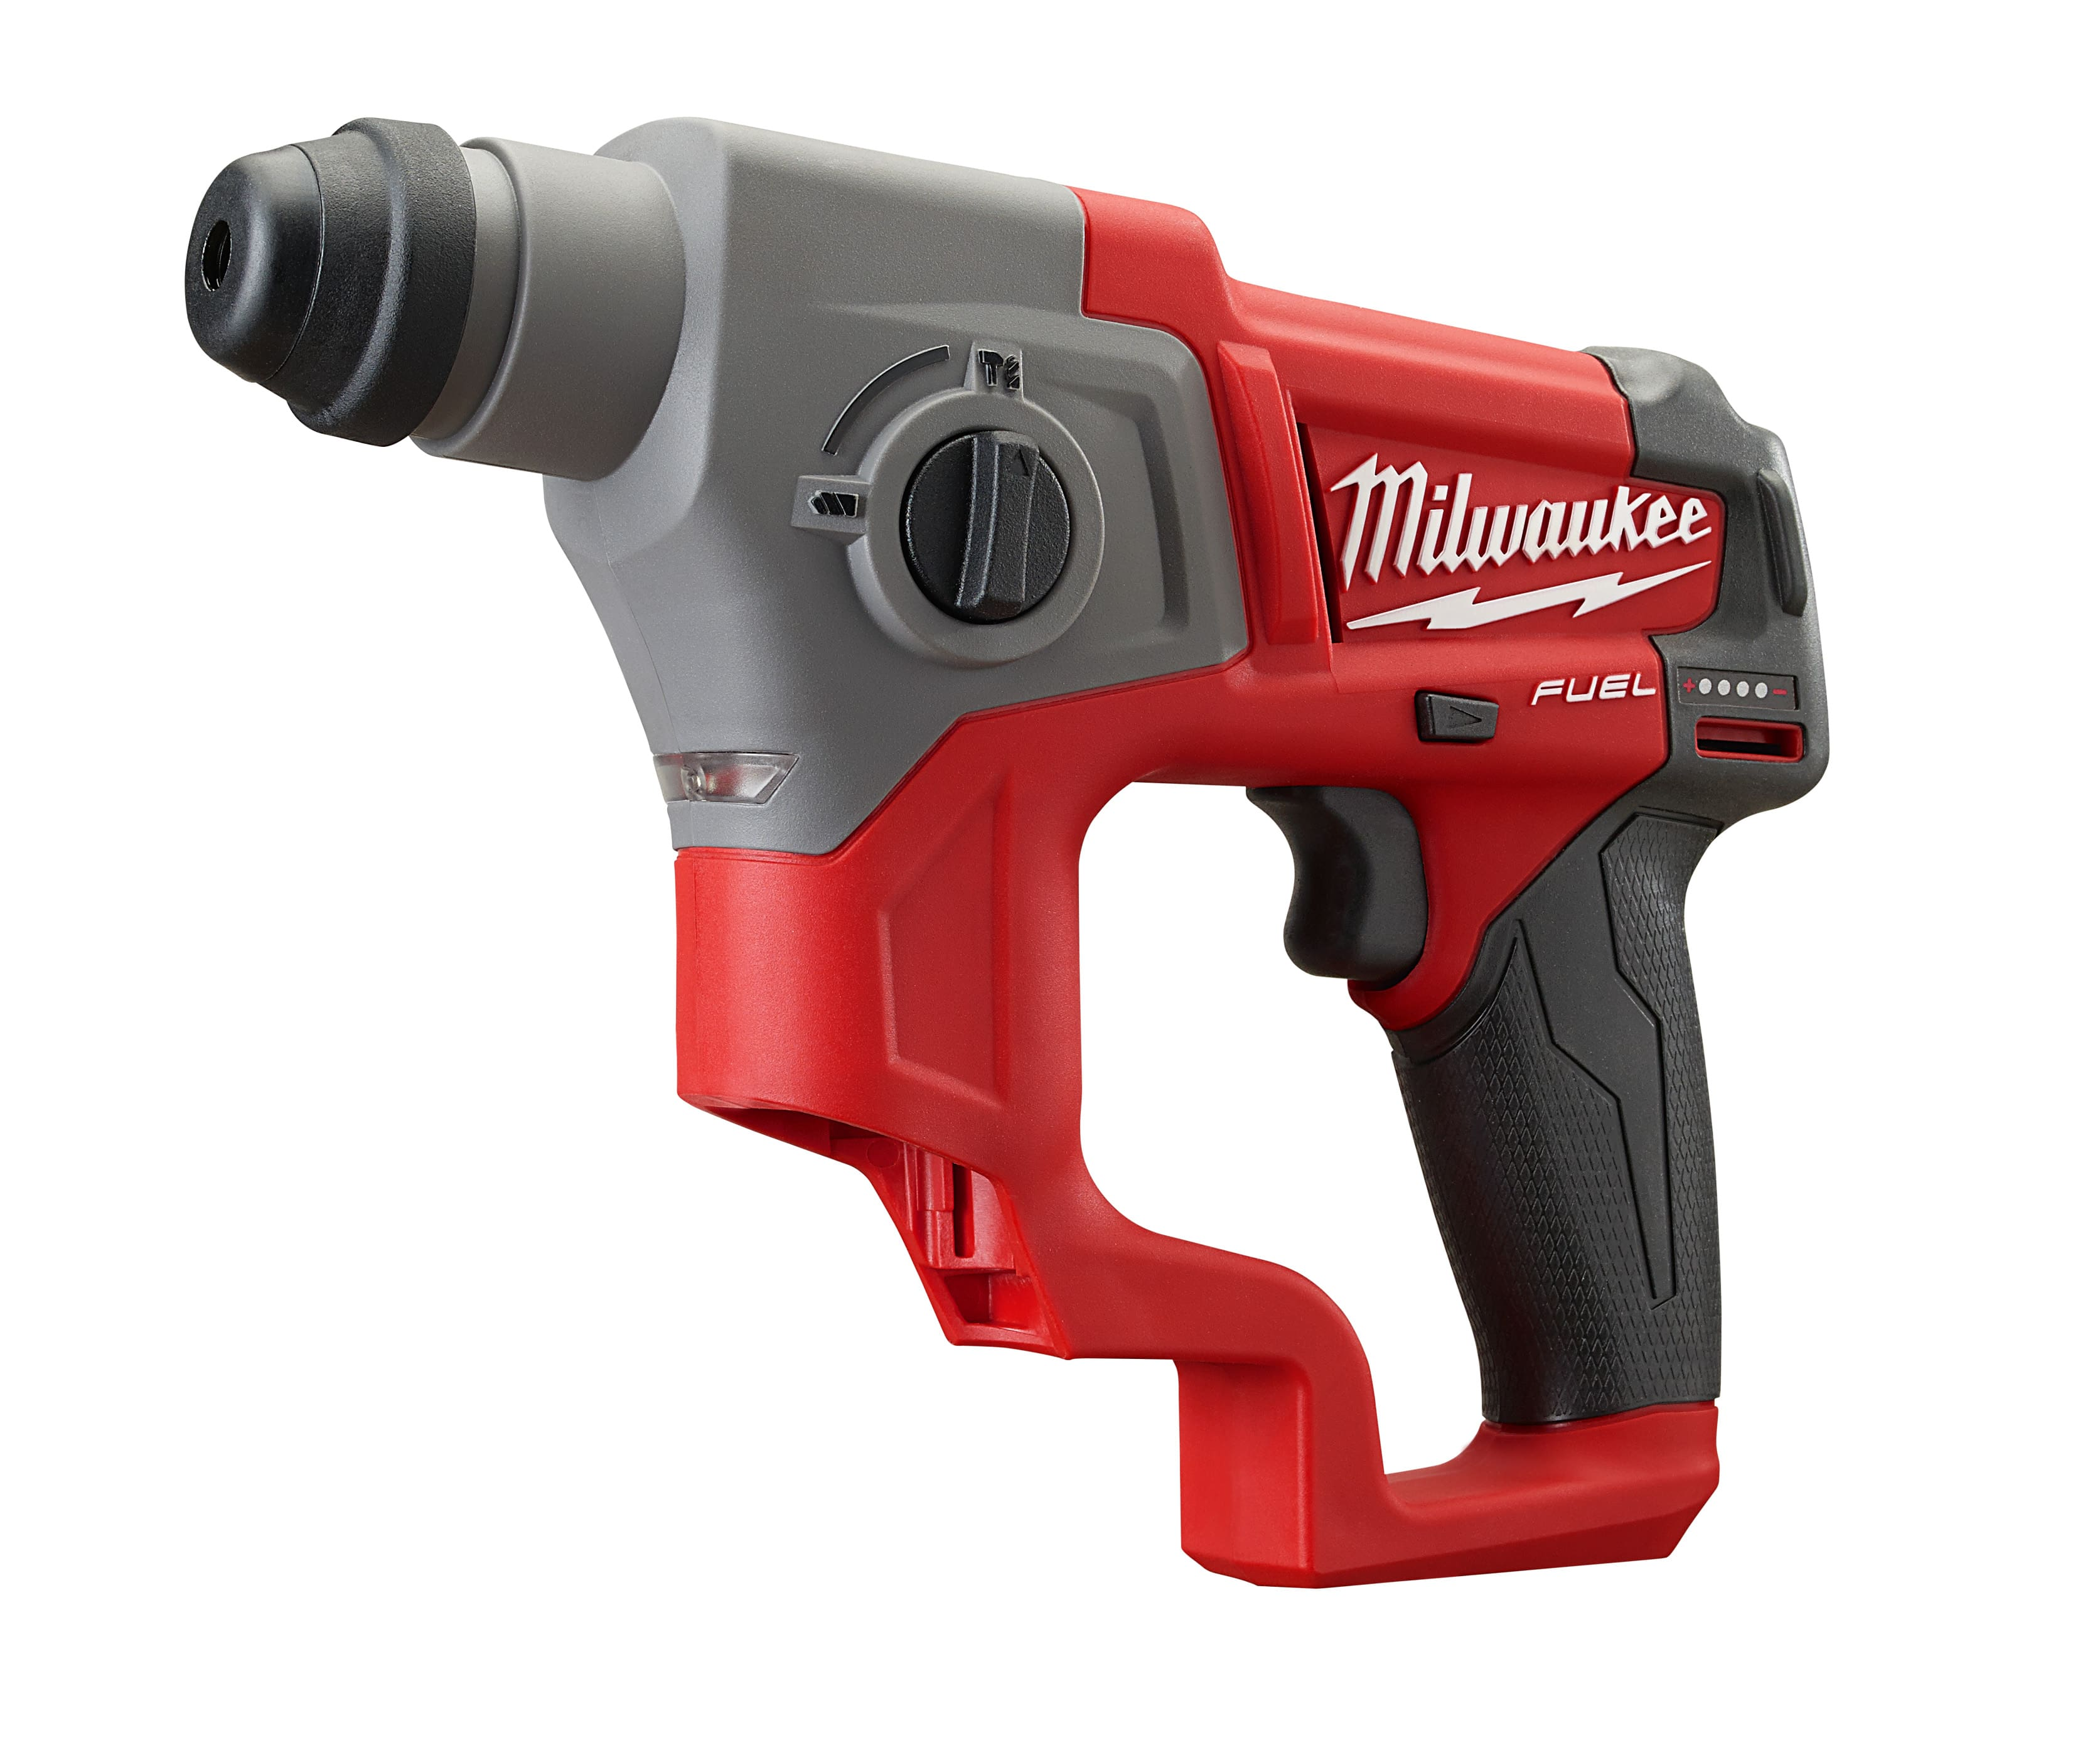 Milwaukee® M12 FUEL™ Cordless Rotary Hammer Drill, 5/8 in Keyless/SDS Plus Chuck, 12 V, Lithium-Ion Battery - $98